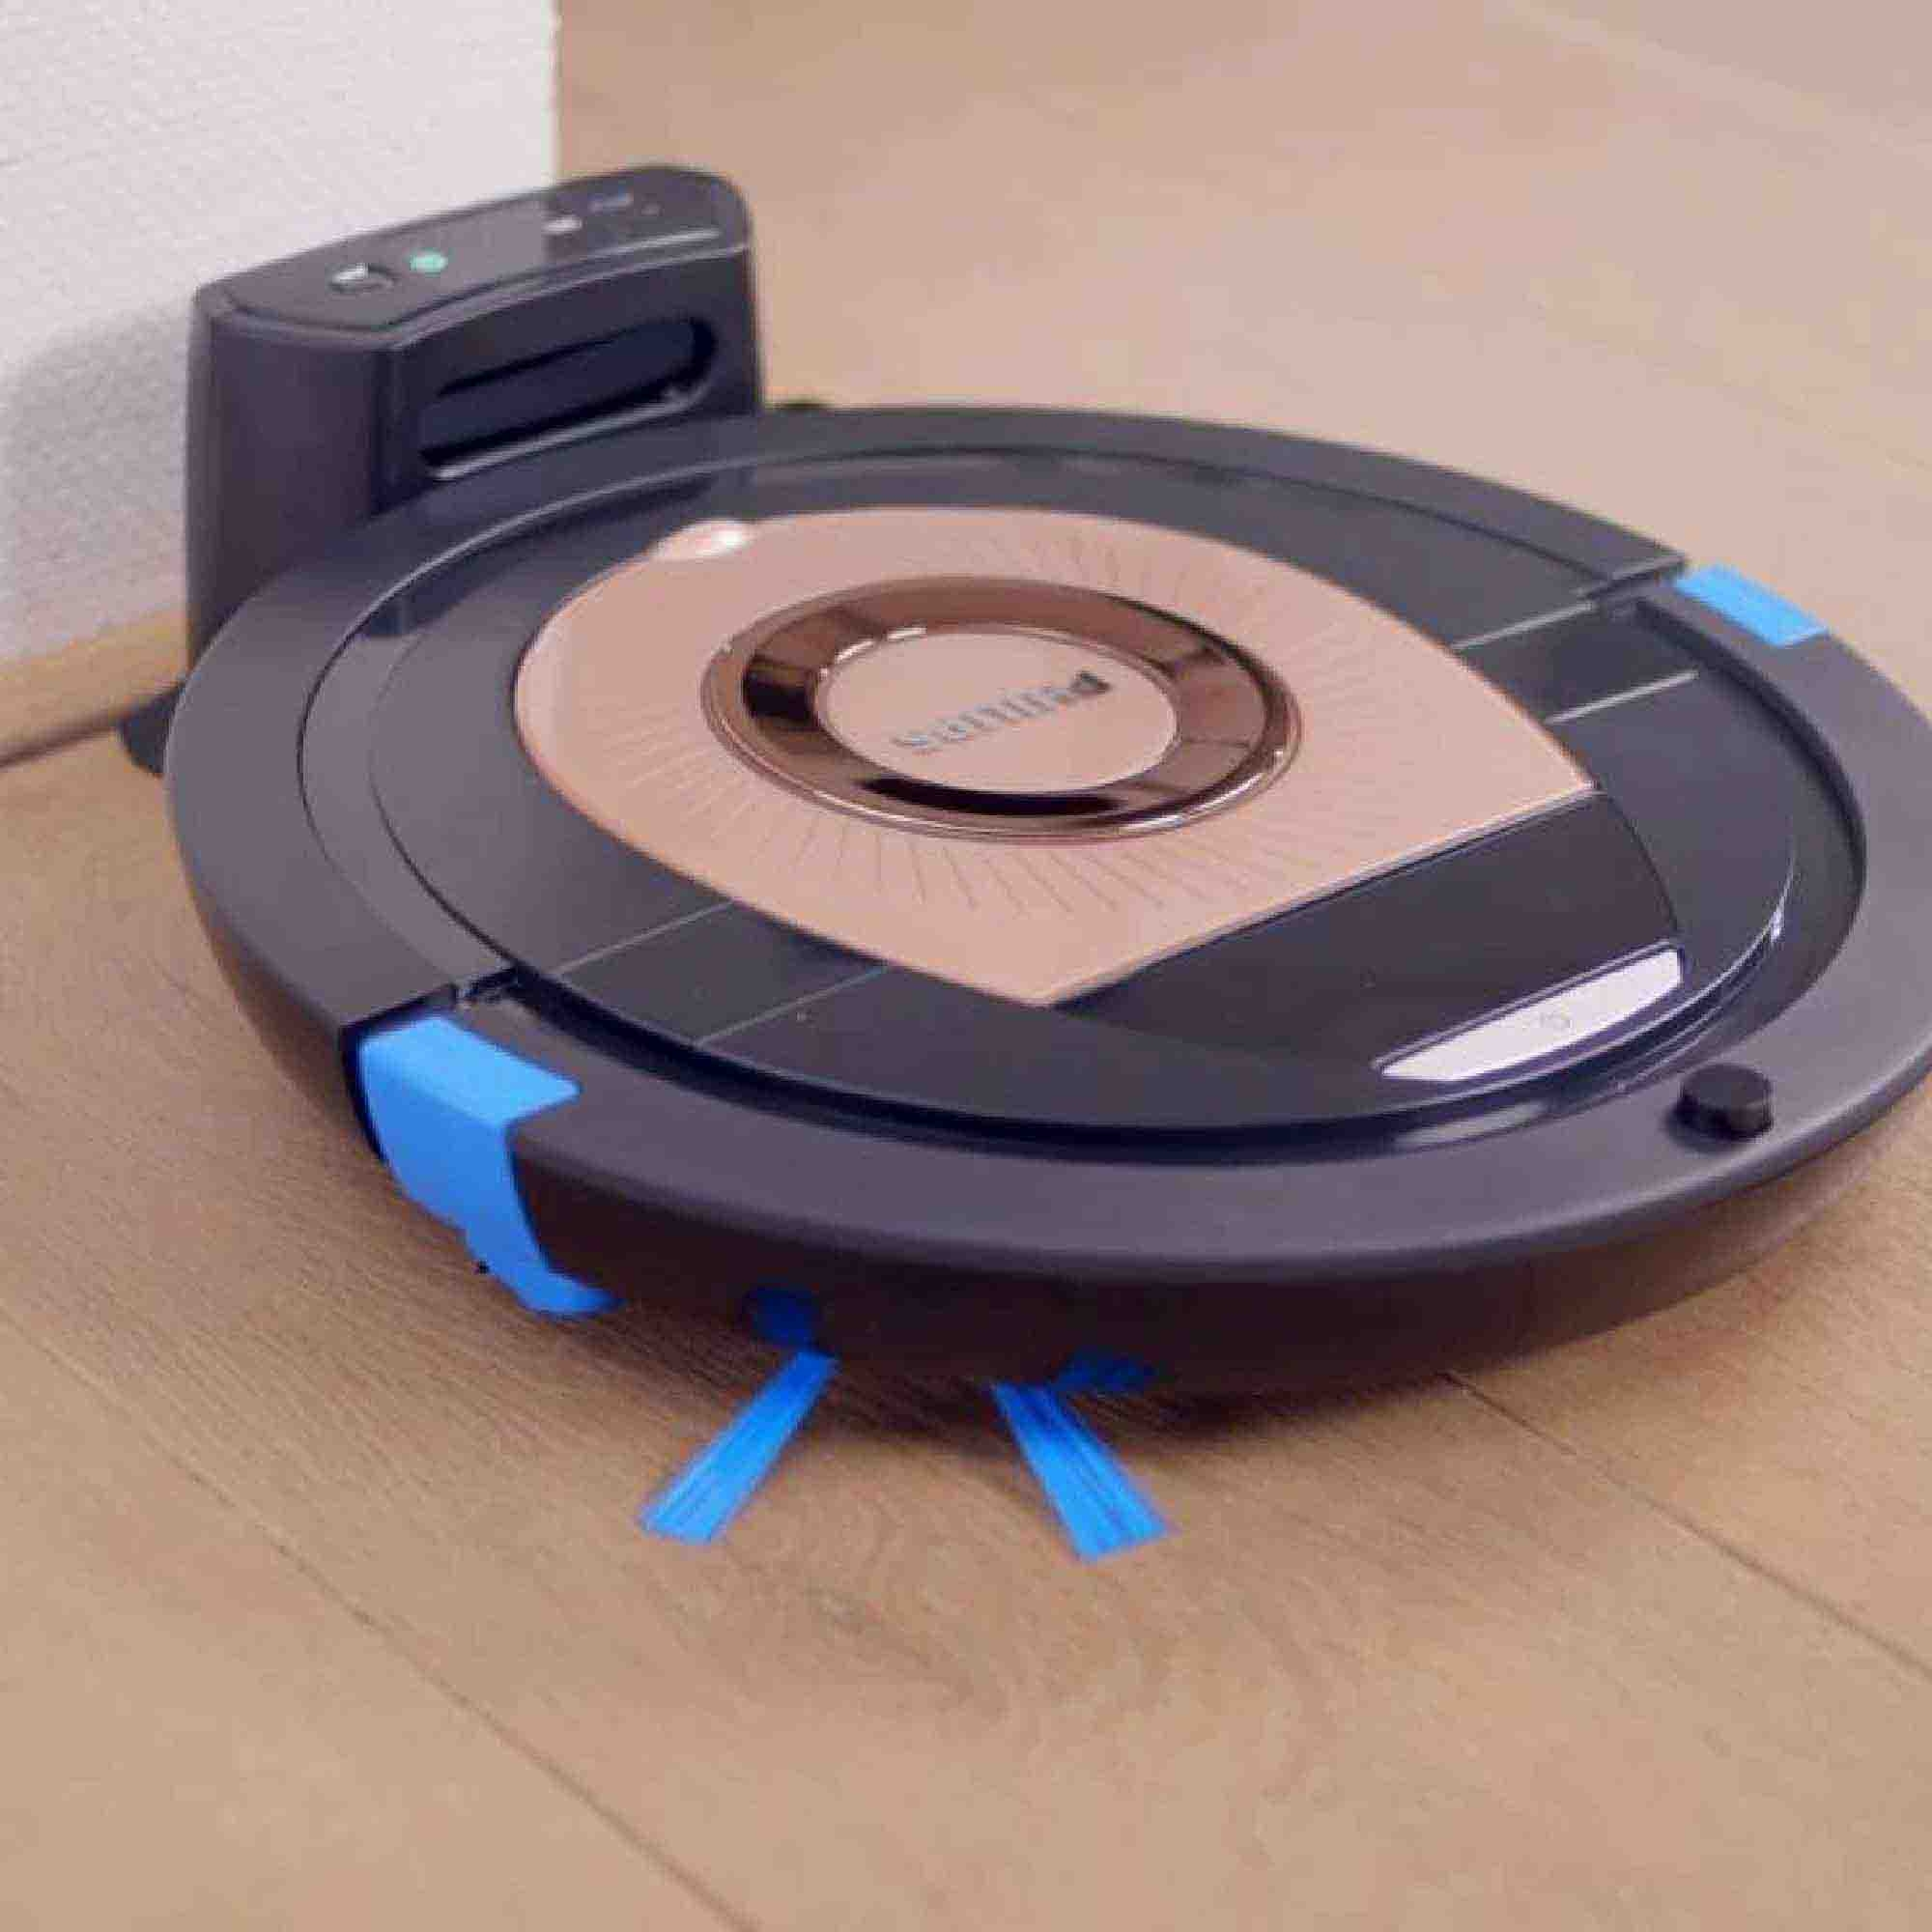 see cleaner irobot pin vacuum great product connectivity roomba wifi this with floor robot